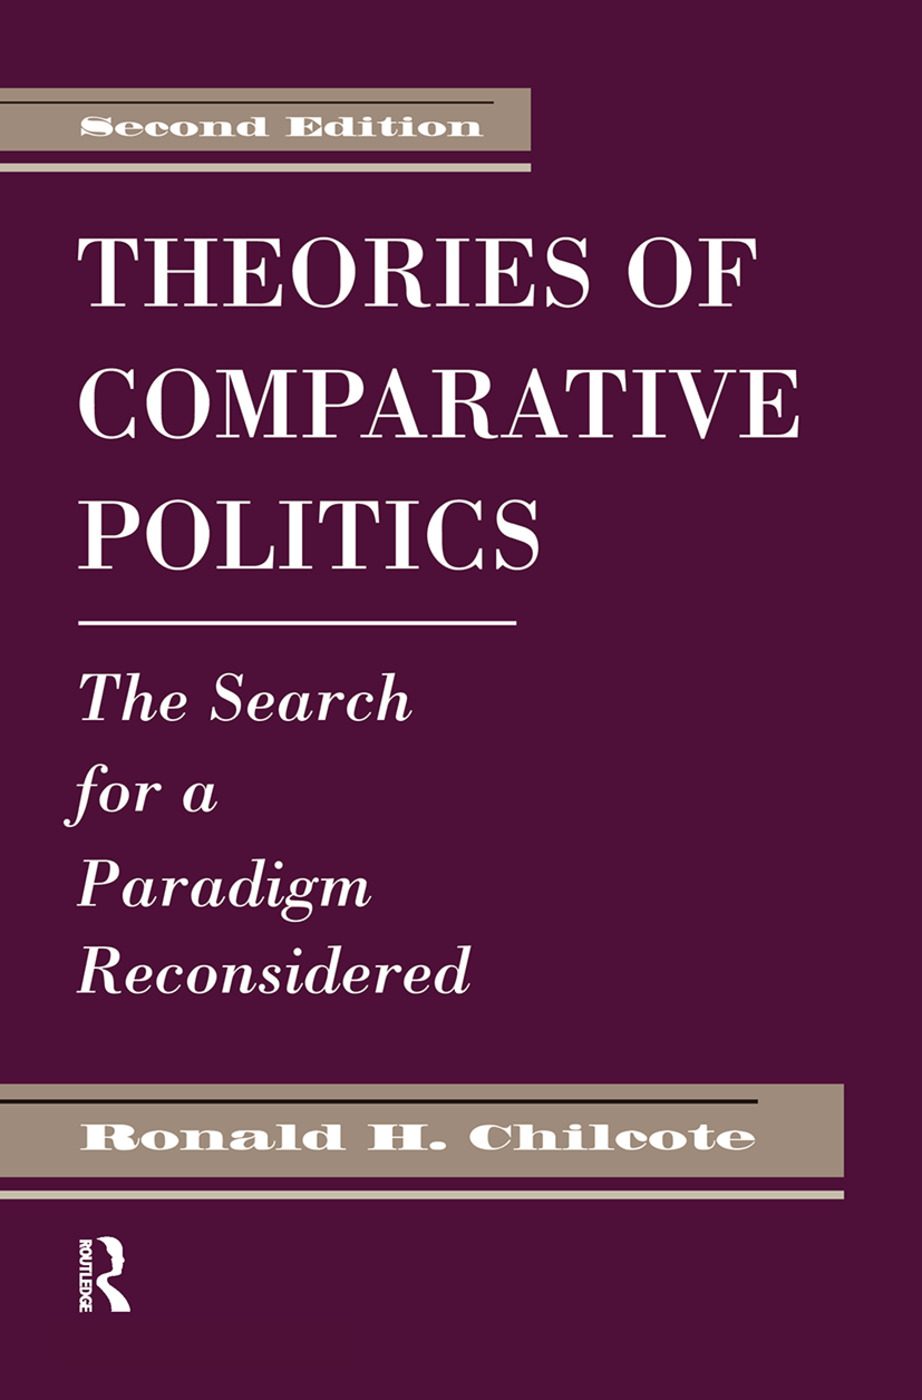 Theories Of Comparative Politics: The Search For A Paradigm Reconsidered, Second Edition book cover